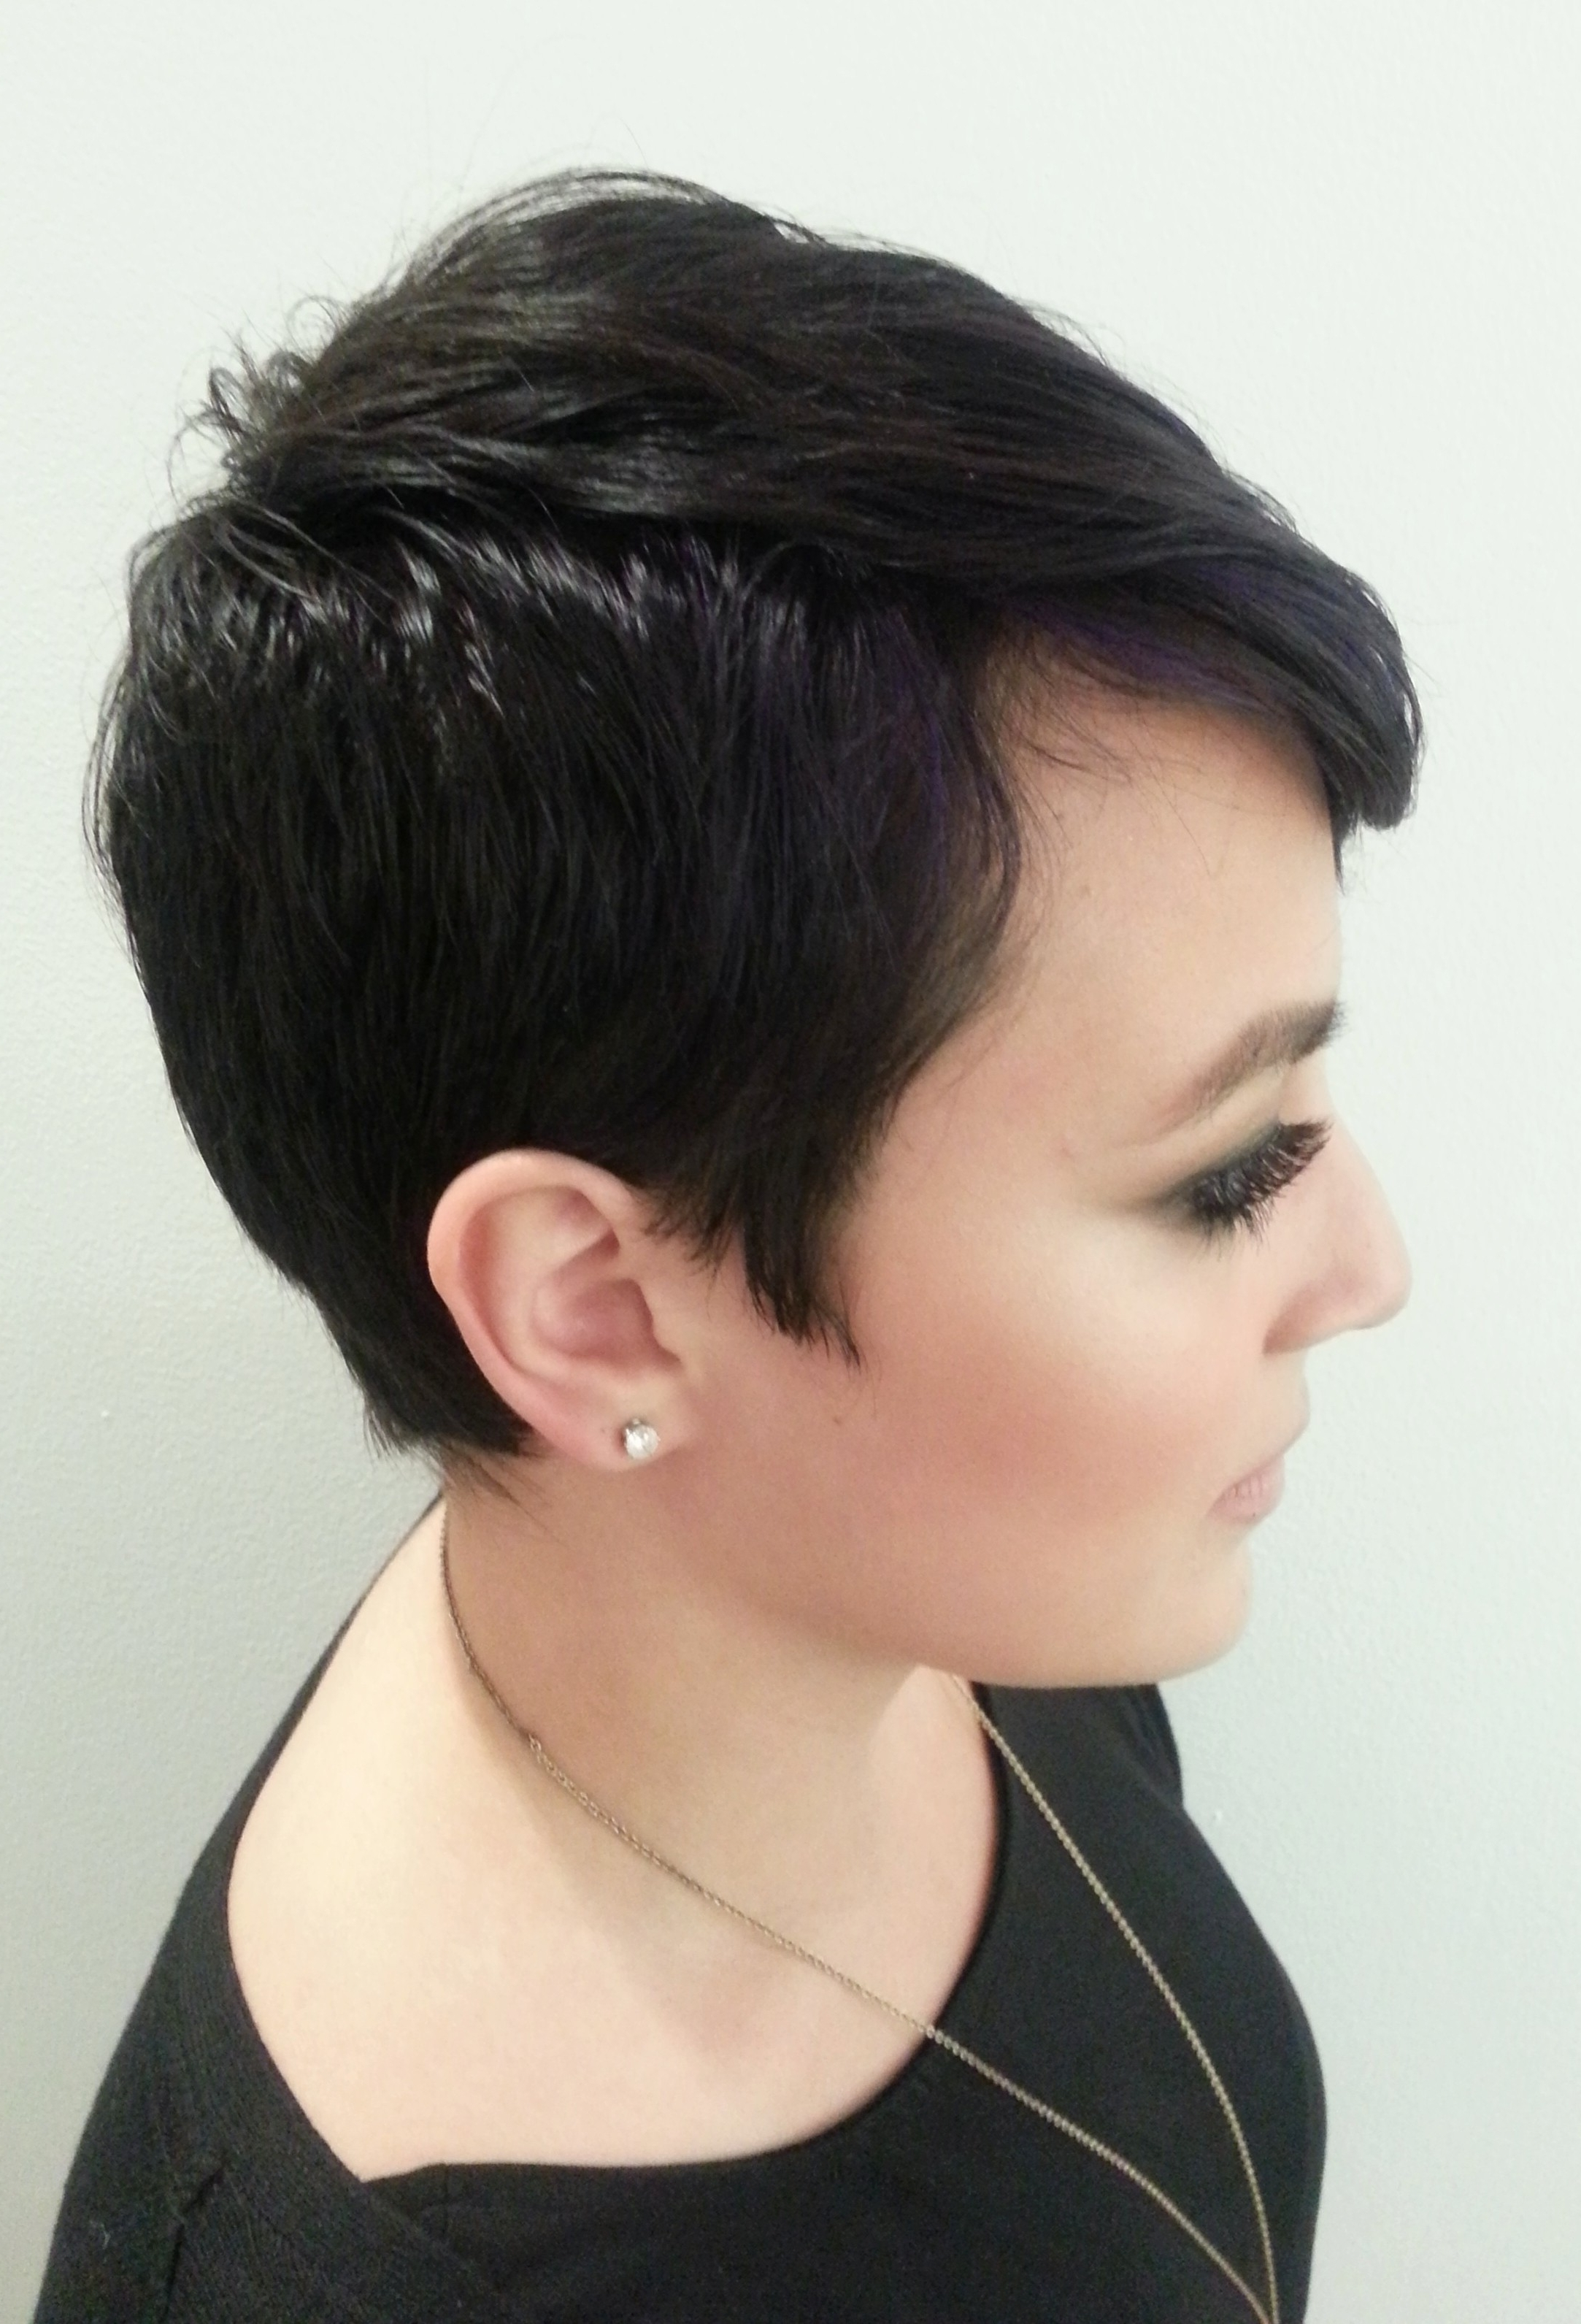 Pixie Haircut For Thick Curly Hair Short Hairstyles Thick Hair Pertaining To Latest Pixie Hairstyles For Wavy Hair (View 8 of 15)